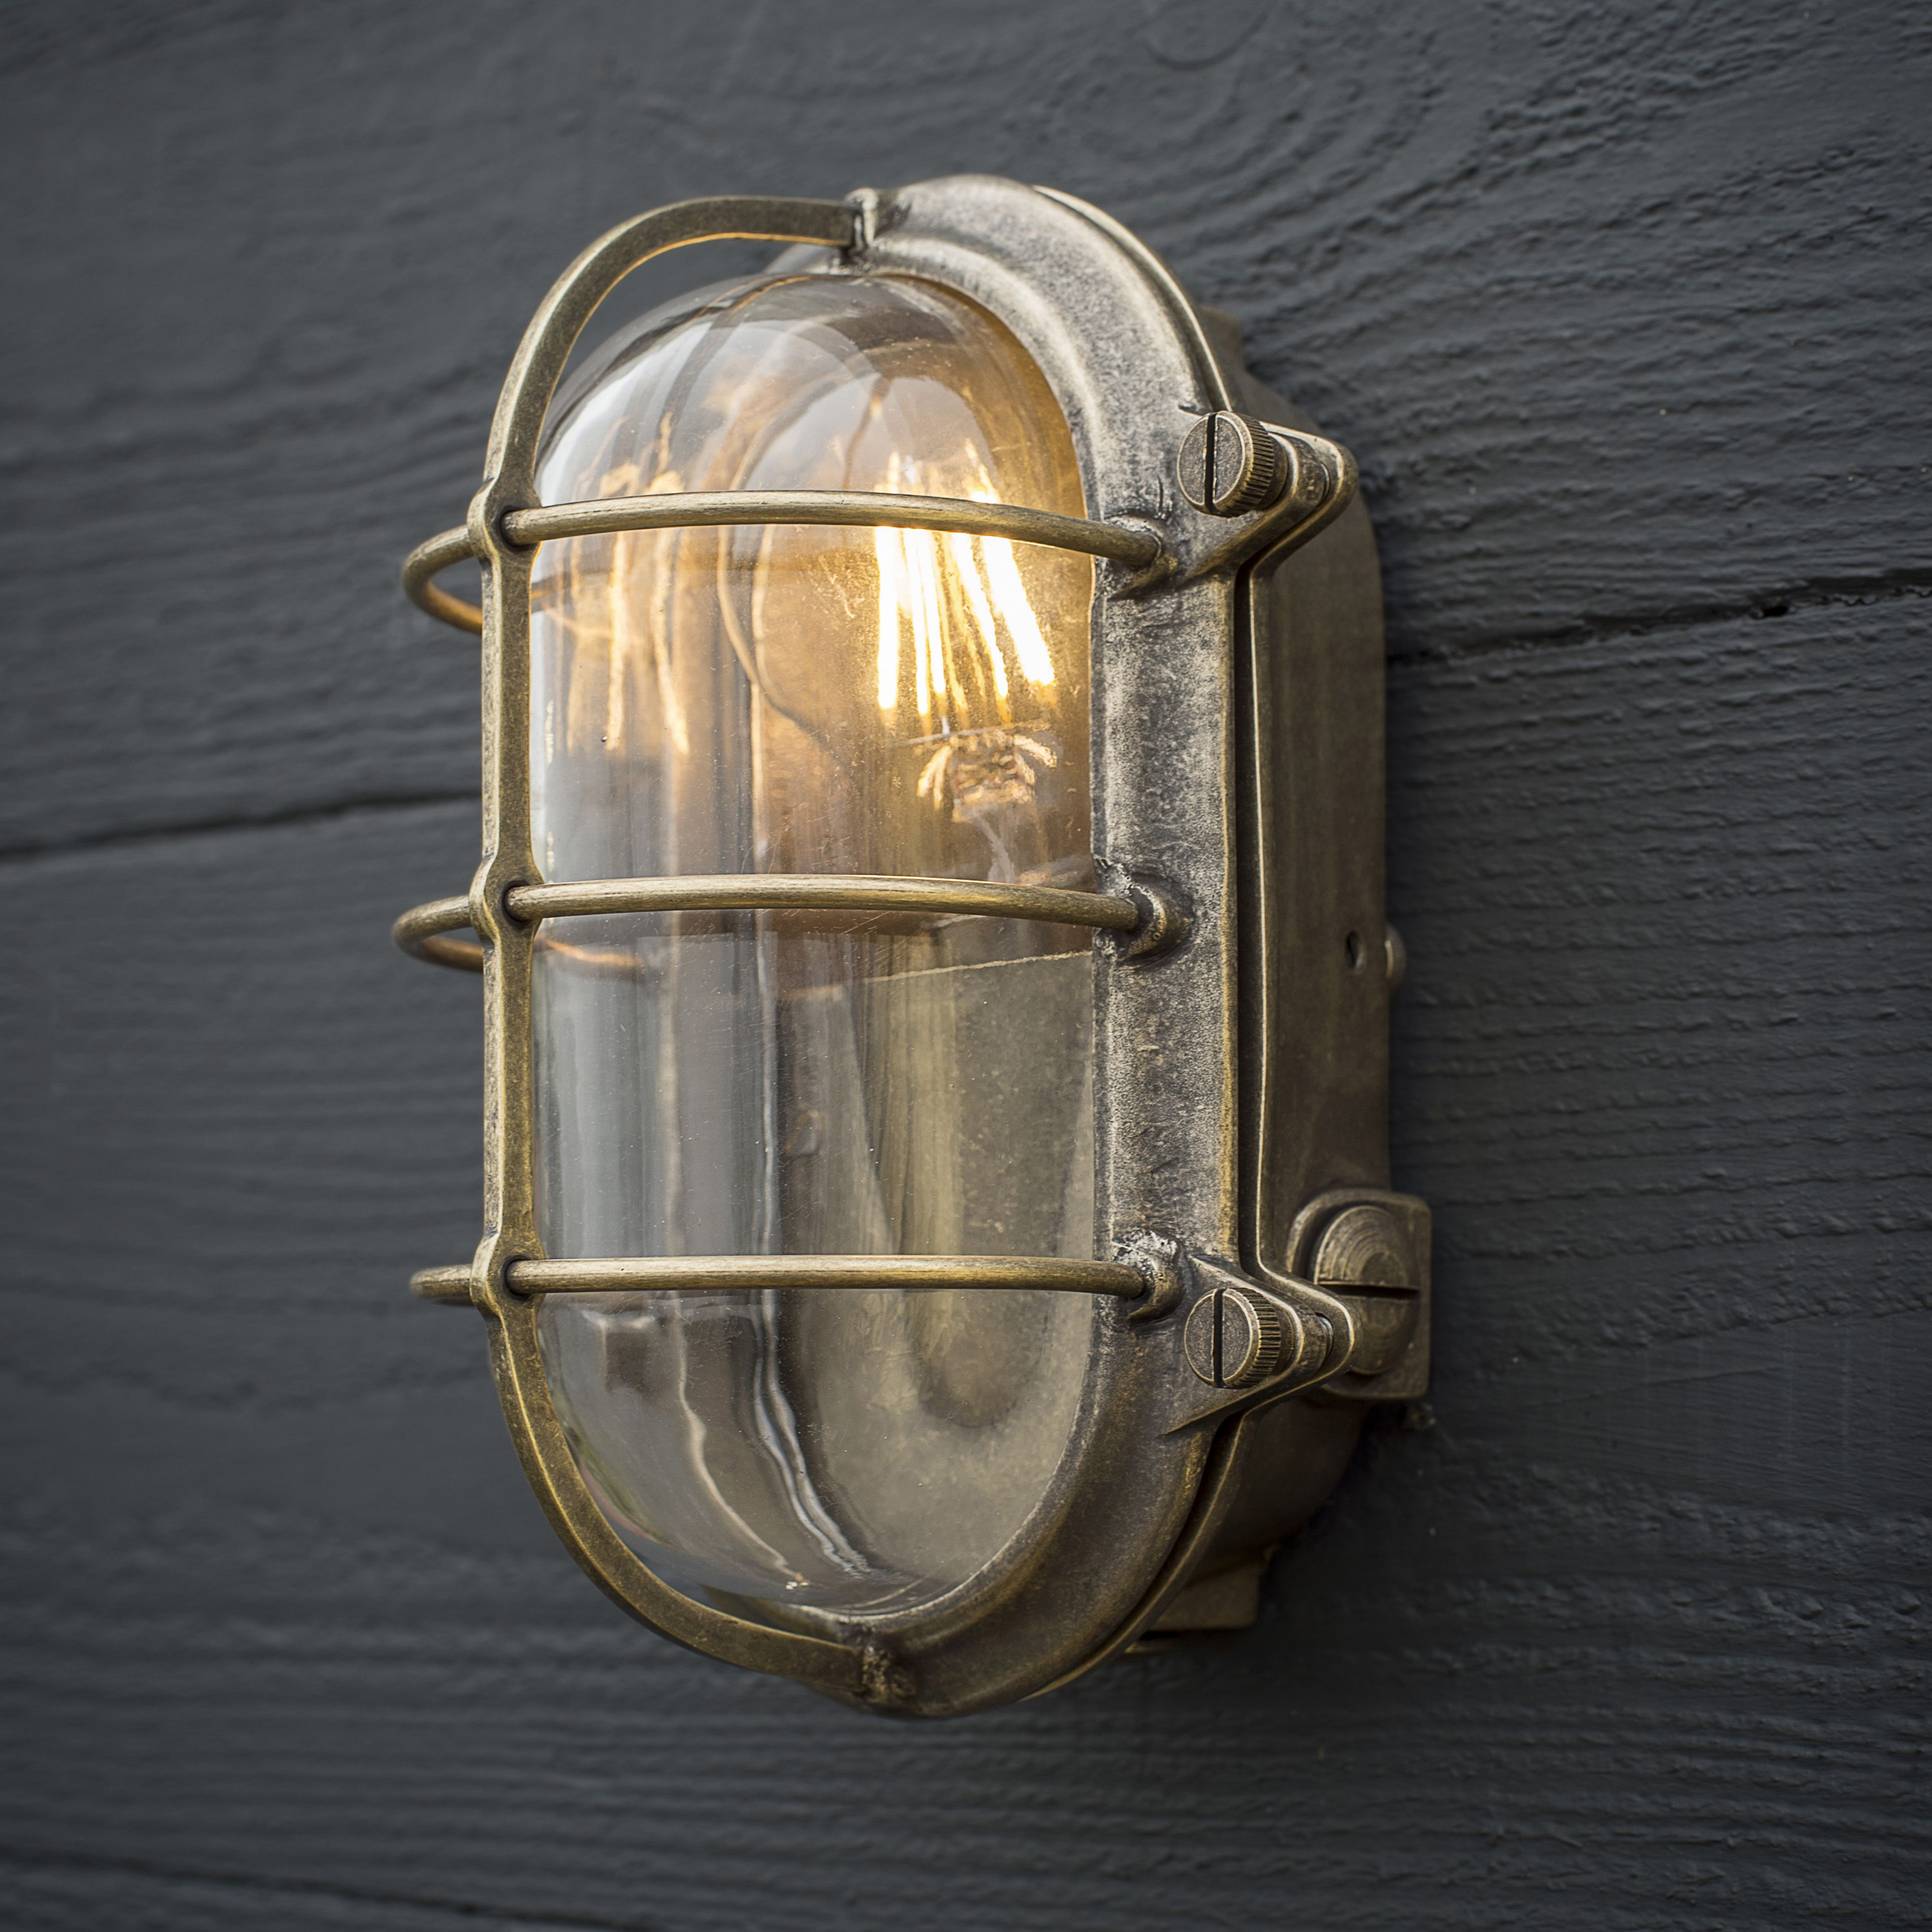 With Its Robust And Practical Styling Reminiscent Of Shipping And Days Gone By Our Bulkhead Wall Ligh Brass Outdoor Lighting Wall Lights Exterior Wall Light